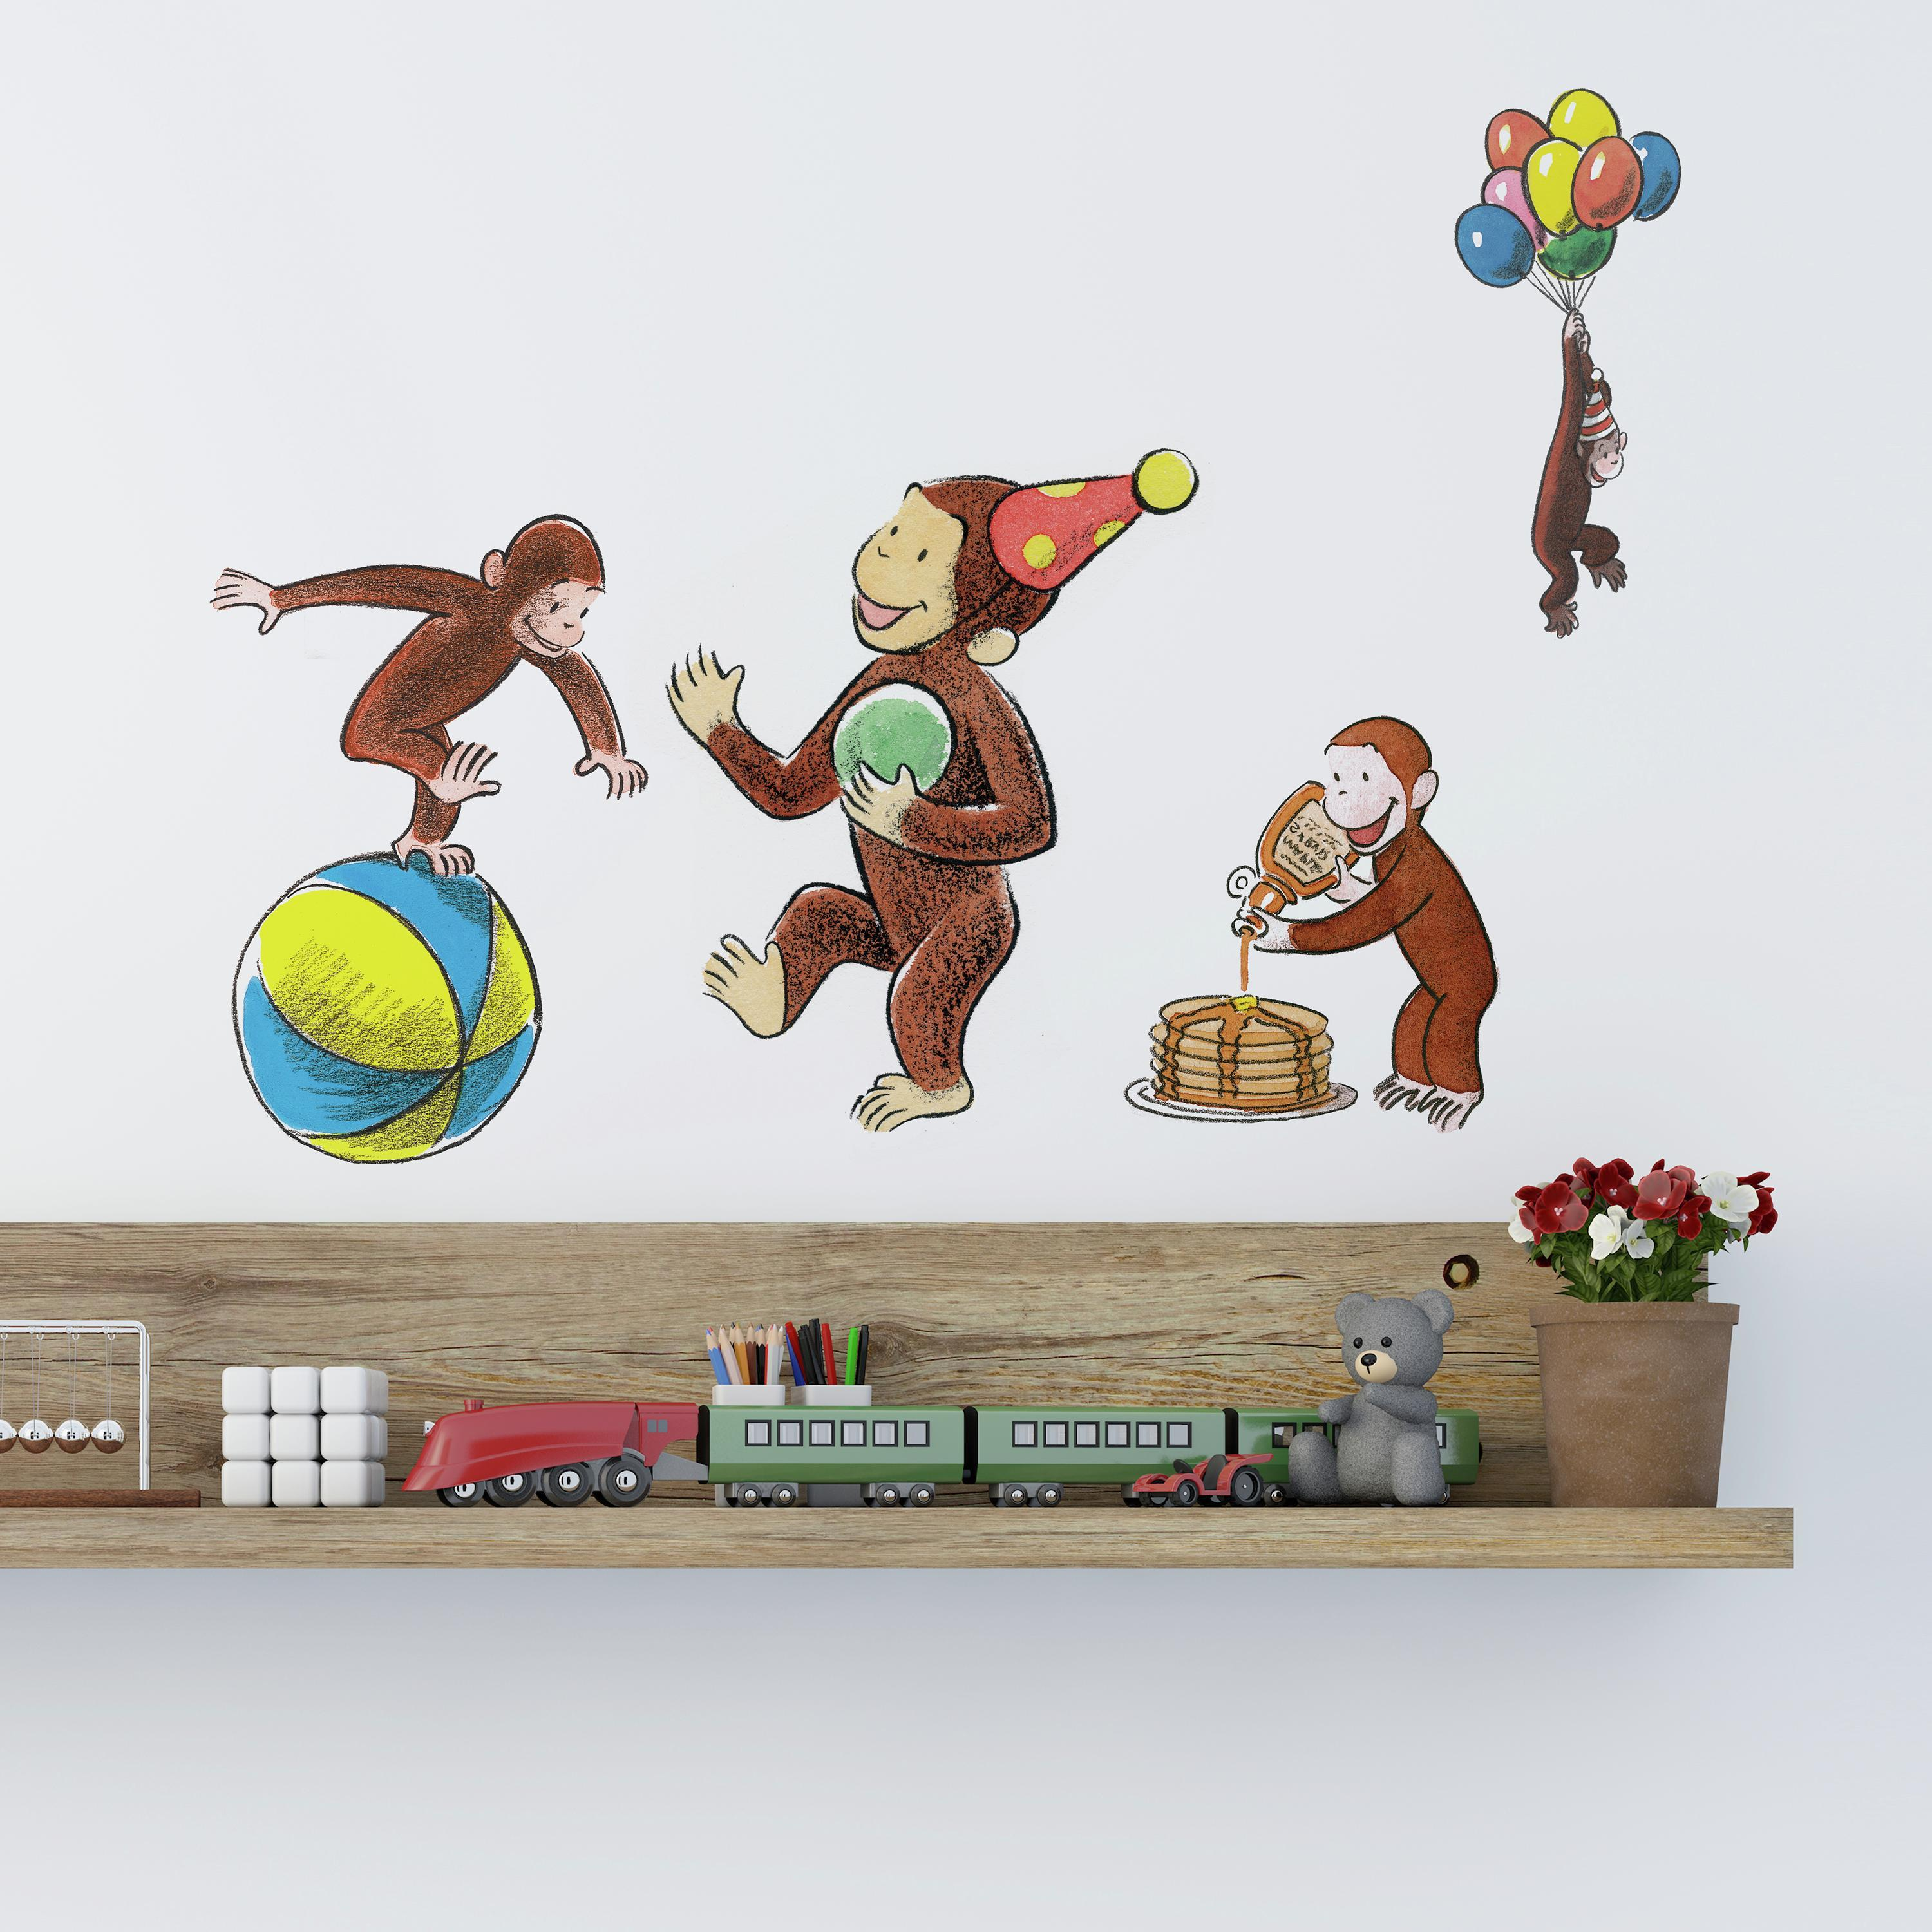 Curious George Storybook Peel and Stick Wall Decals